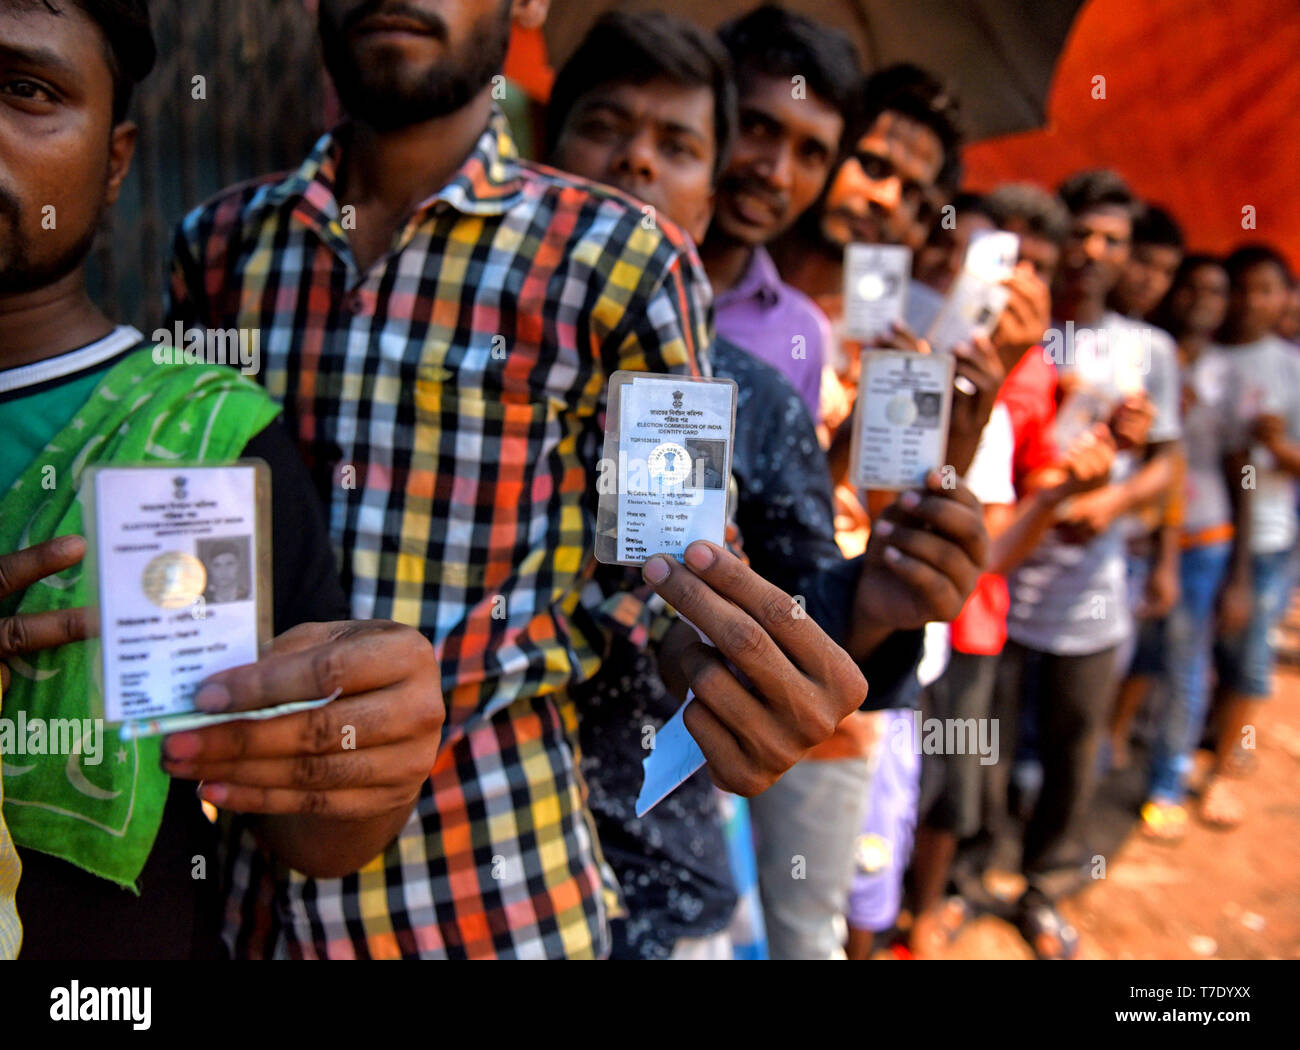 Voters seen with their Identity Cards before casting their Votes at a polling station during the 5th Phase of General Elections of India. - Stock Image